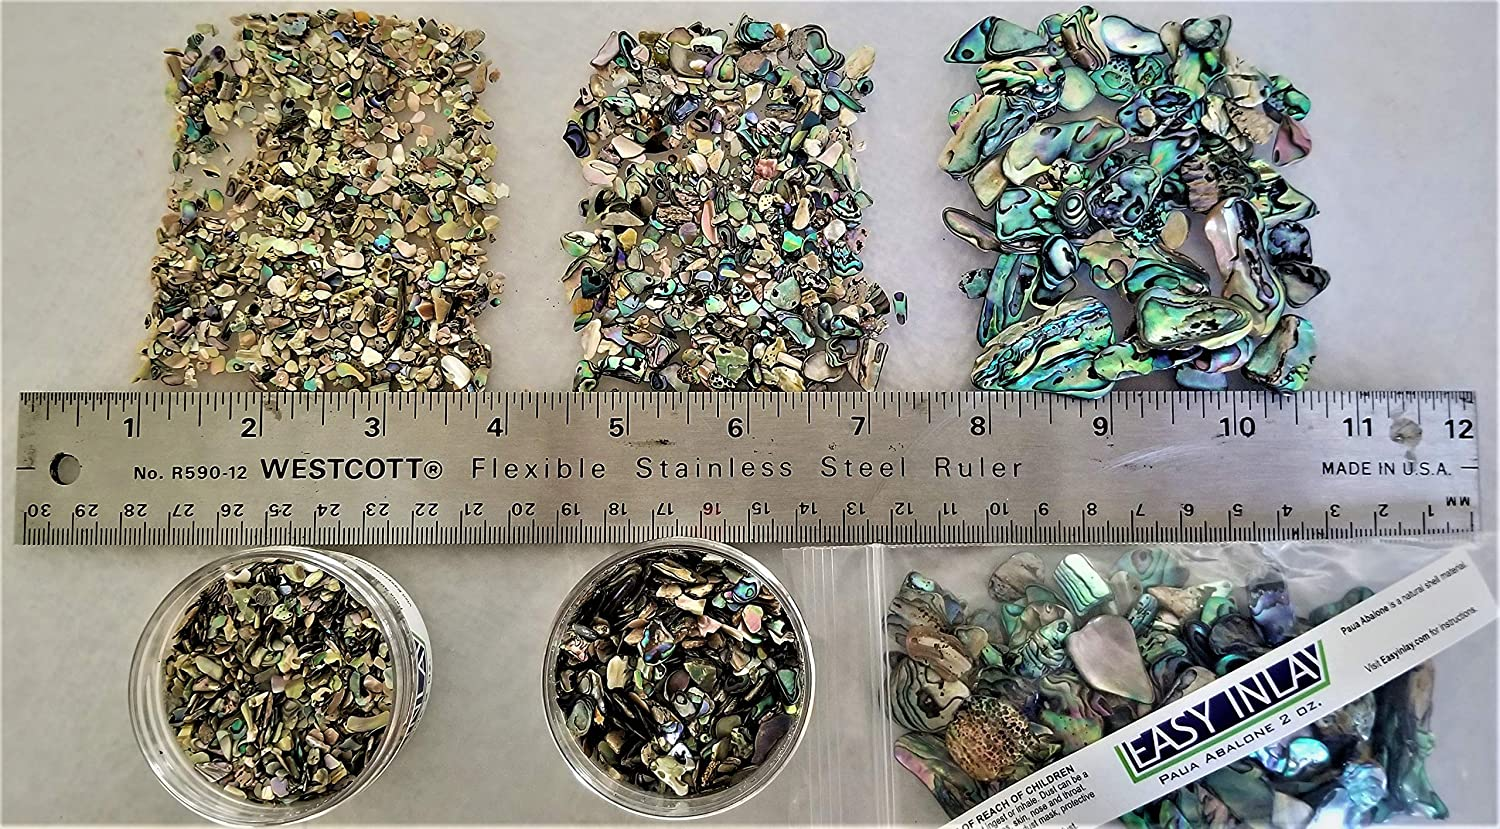 100 g Lot of Paua Shell Pieces for Inlay Decoration Jewellery Etc.